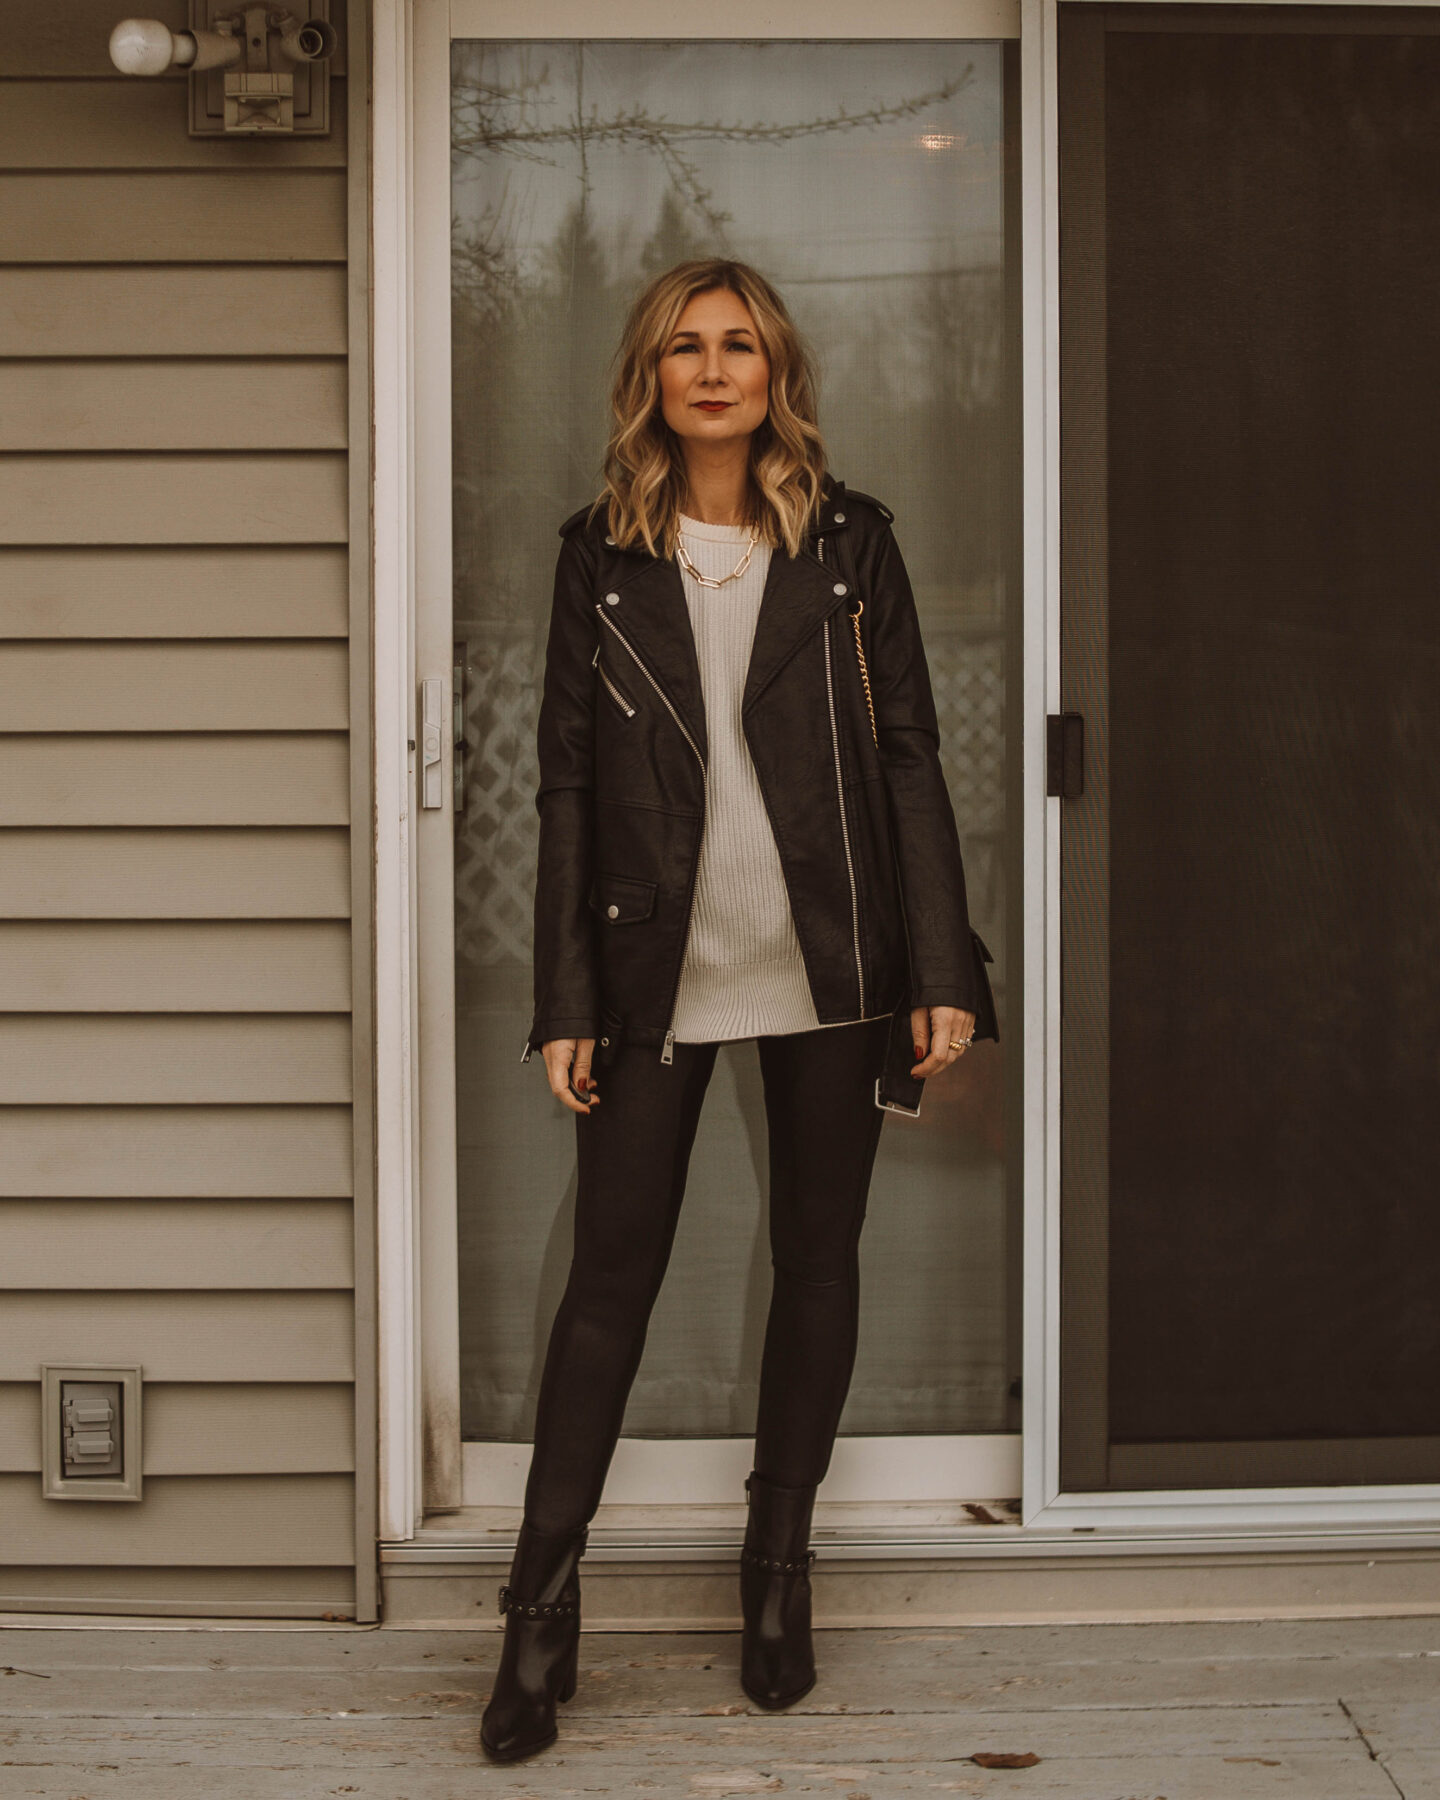 New Years Eve Outfits Feat. Faux Leather Leggings, levi's leather jacket, spanx faux leather leggings, black heeled booties, white sweater